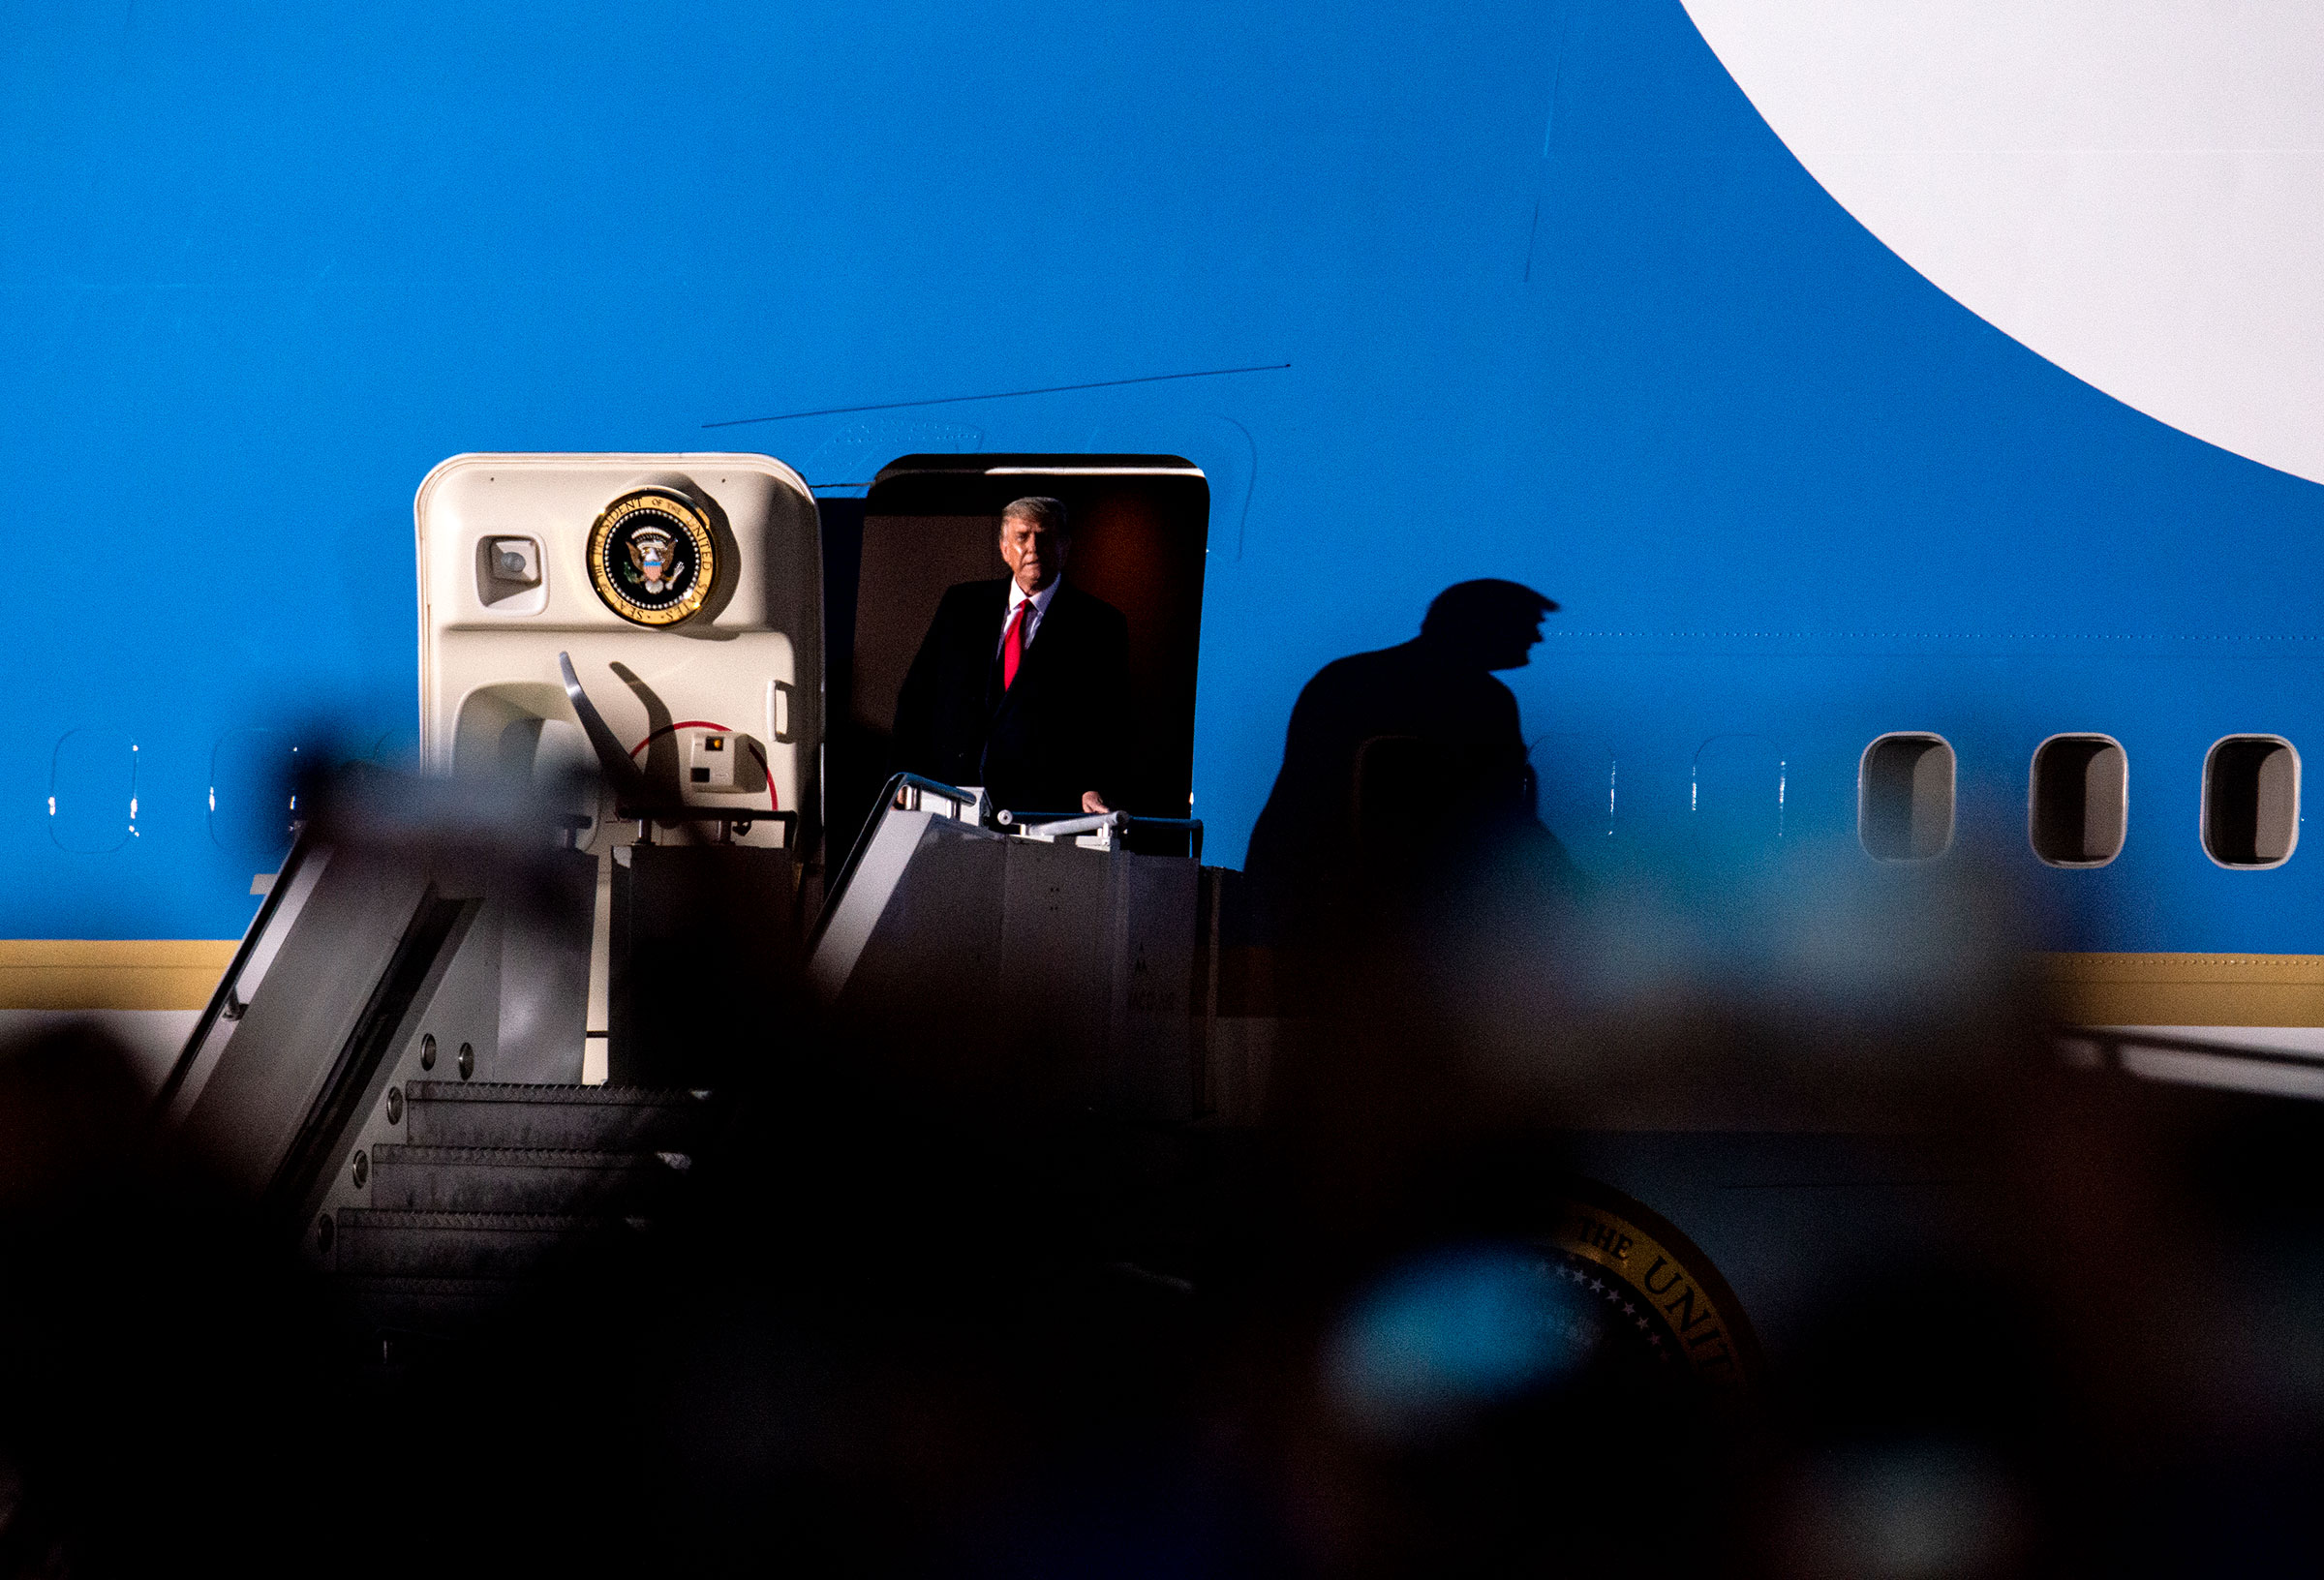 President Donald Trump arrives on Air Force One for a campaign rally at the Duluth International Airport on Sept. 30, 2020 in Duluth, Minnesota.